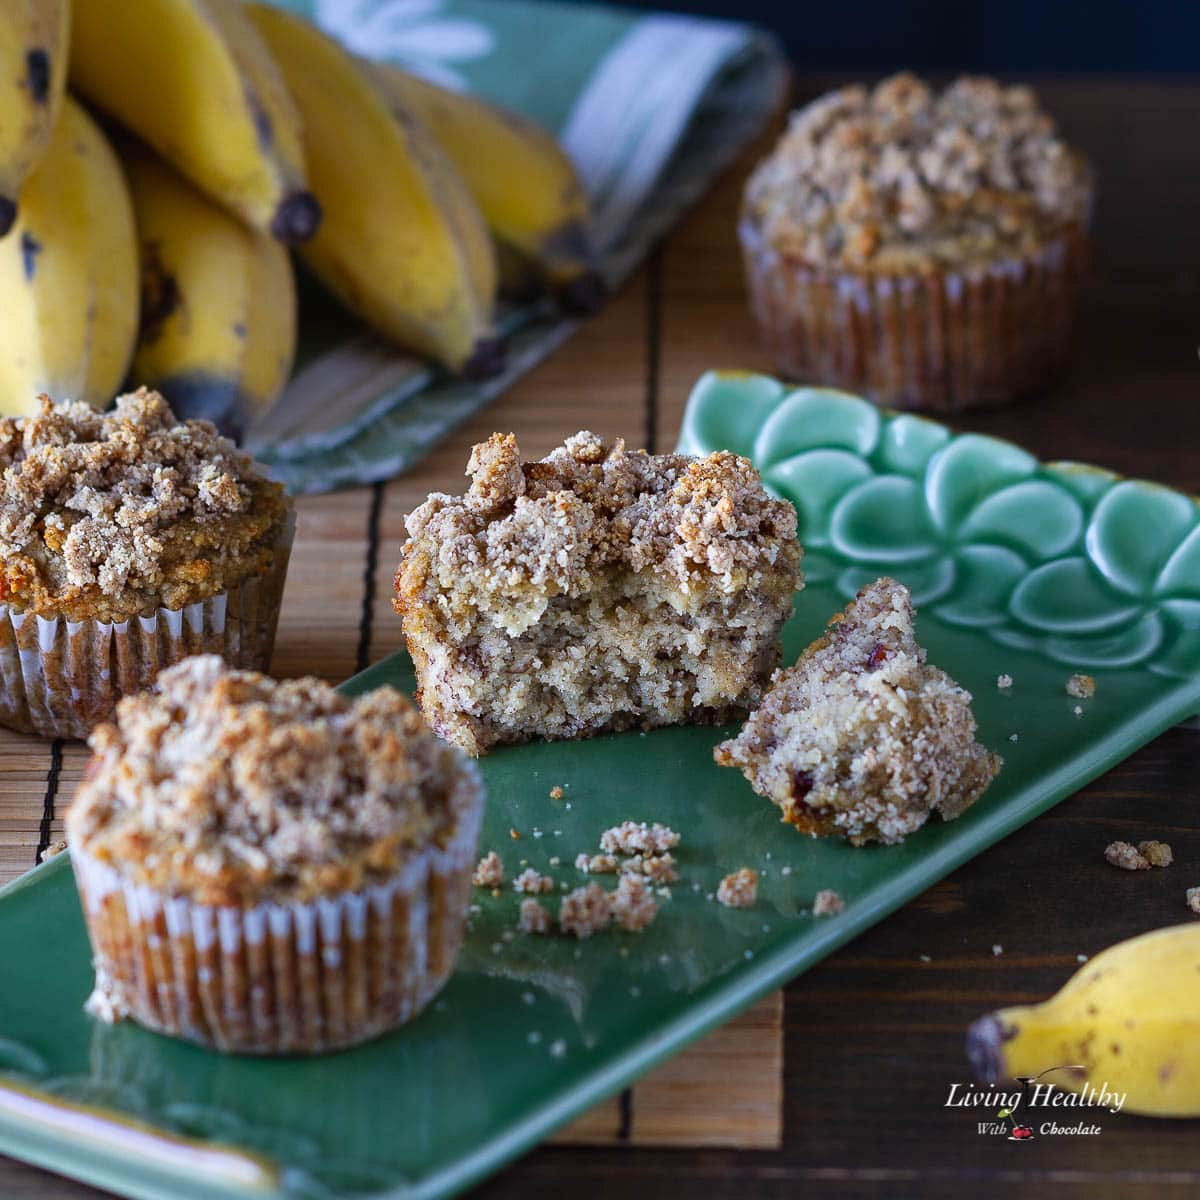 three banana muffins with crumb topping on a table and one muffin cut in half on a green plate